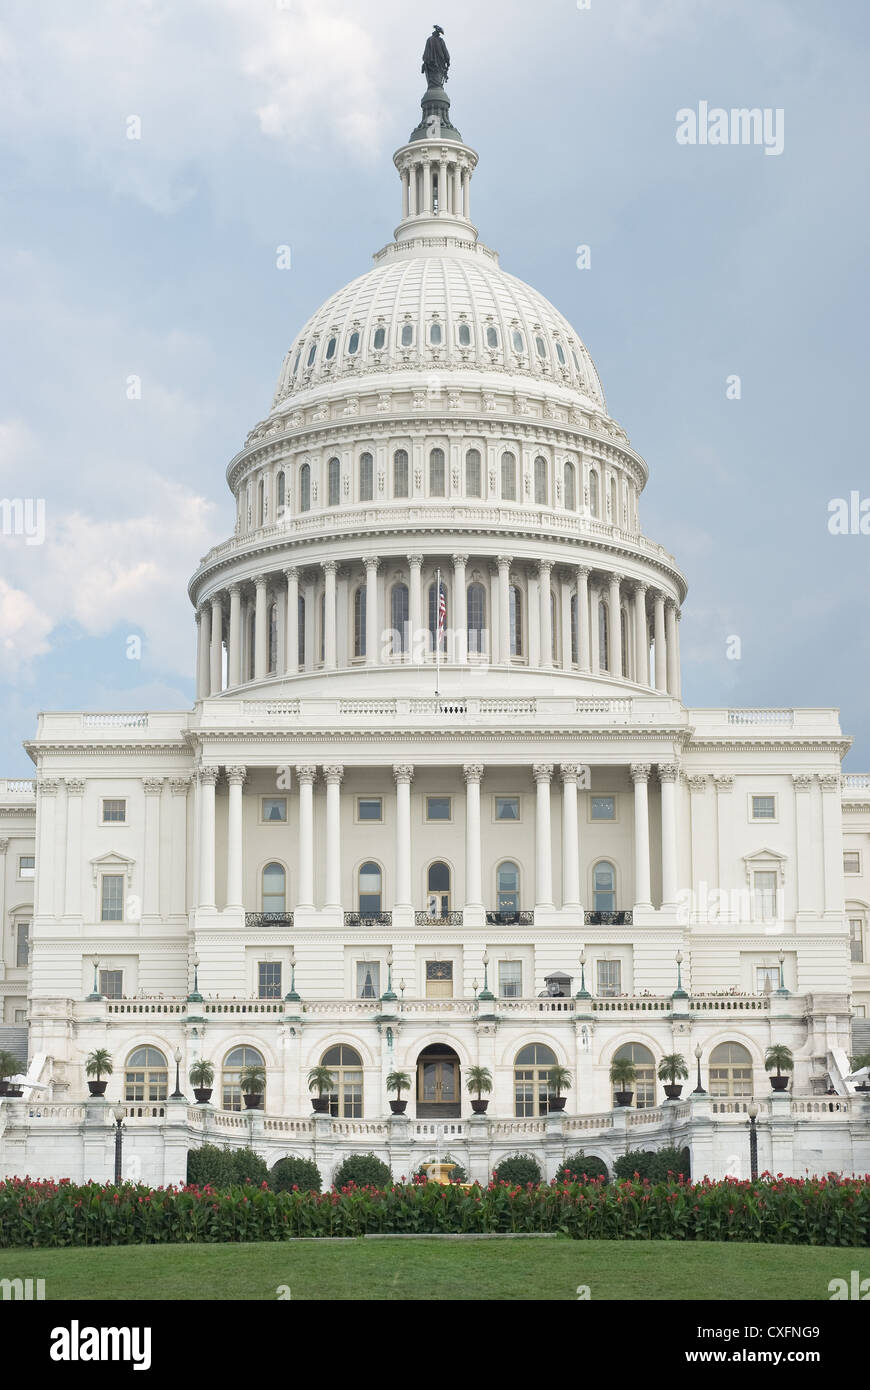 United States Capitol High Resolution Stock Photography And Images Alamy